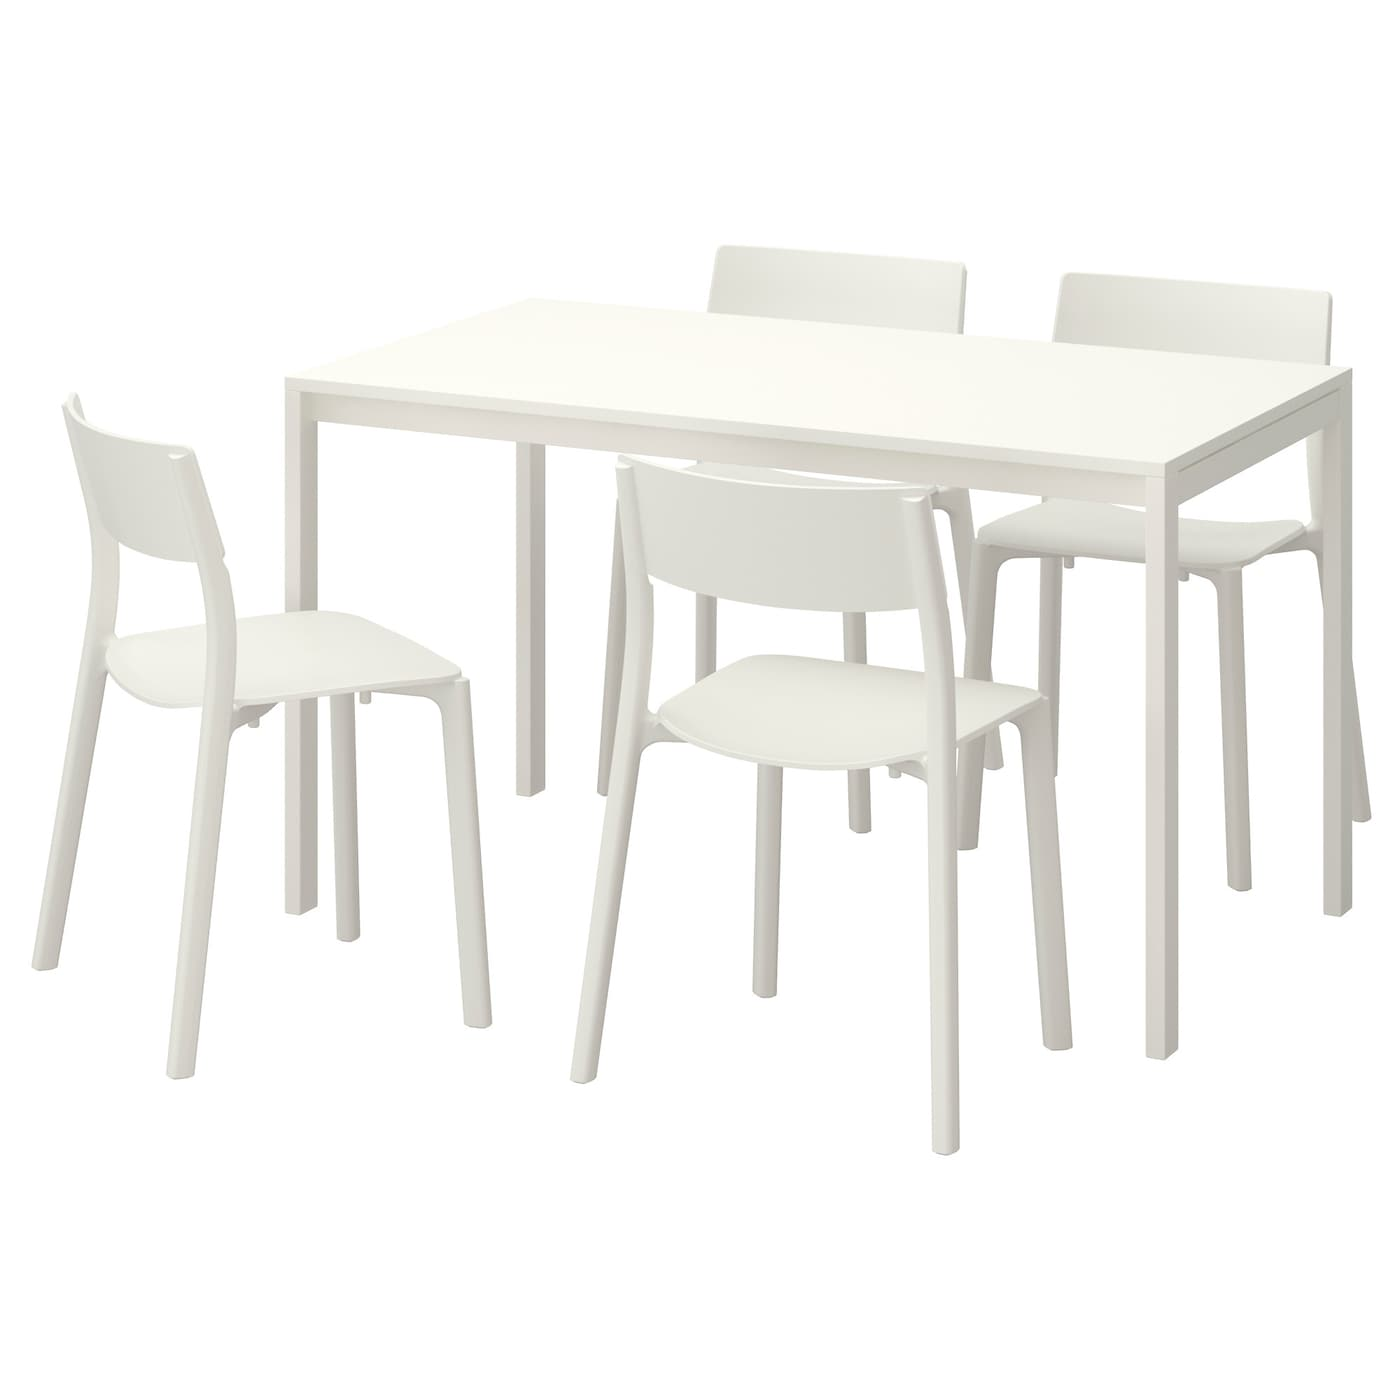 Melltorp janinge table and 4 chairs white white 125 cm ikea for Set de table ikea